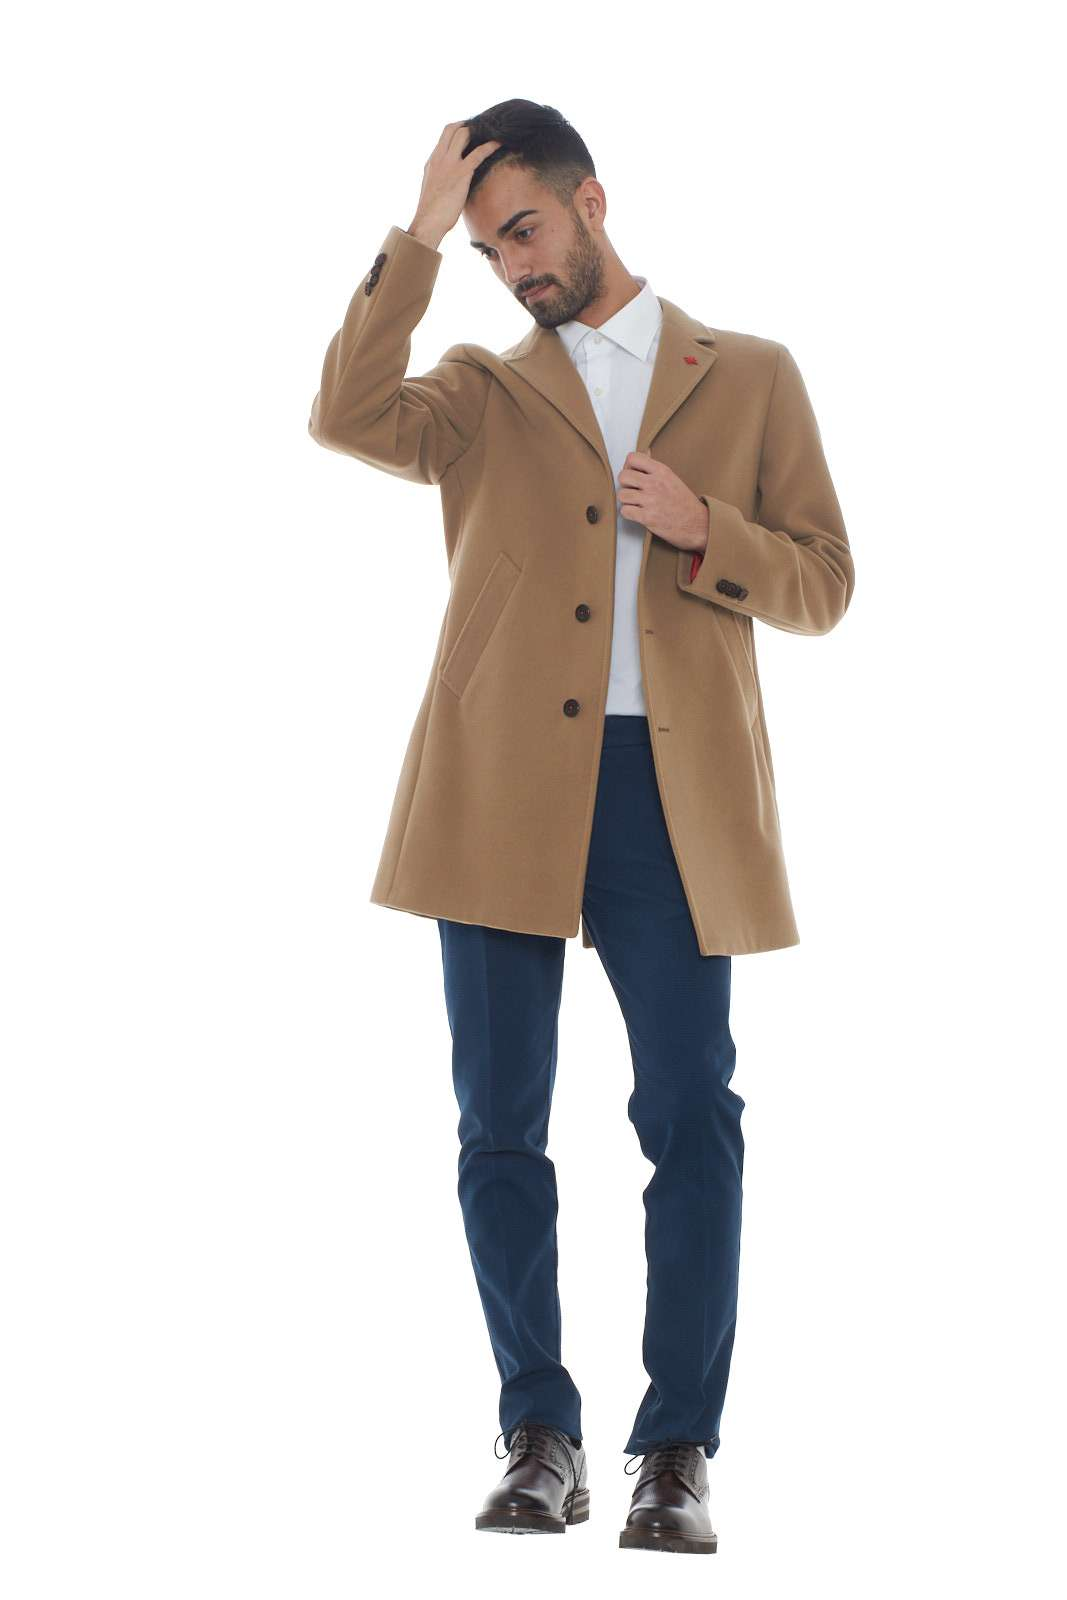 https://www.parmax.com/media/catalog/product/a/i/AI-outlet_parmax-cappotto-uomo-Manuel-Ritz-2732C4448%20193727-D.jpg